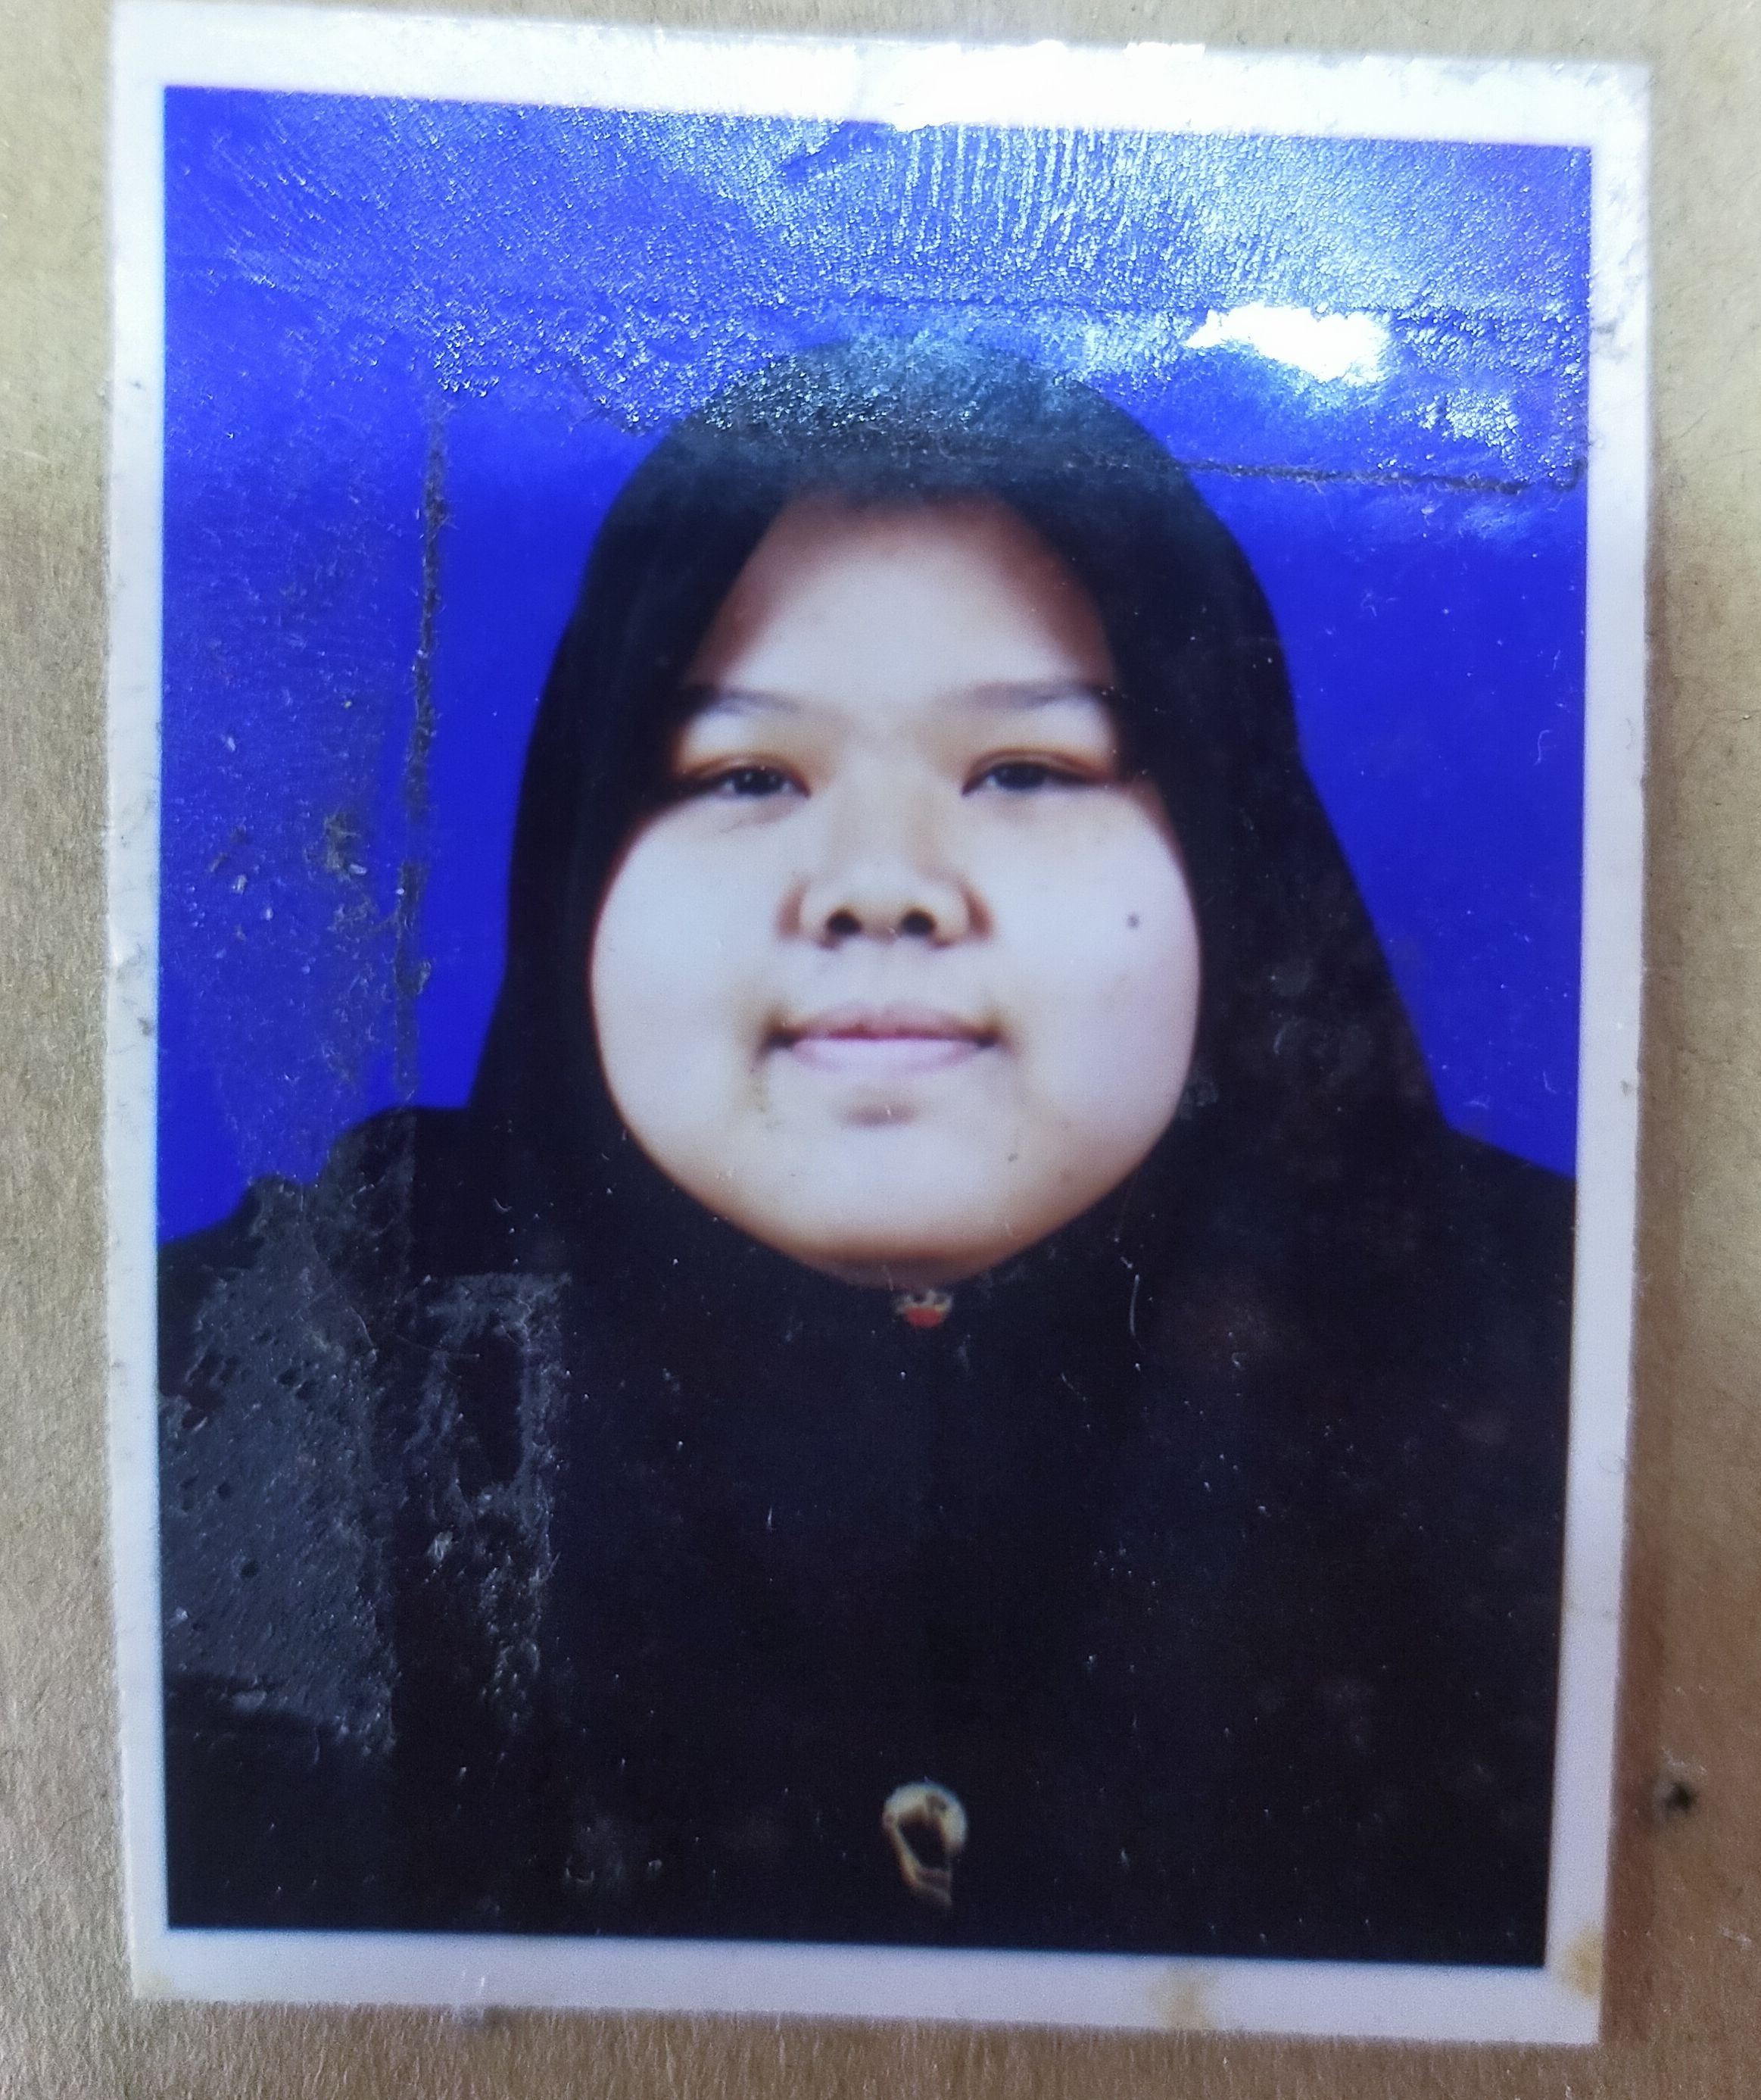 Nur Faten Hanieza MI in a passport photo. She is wearing a black headscarf and is smiling slightly.